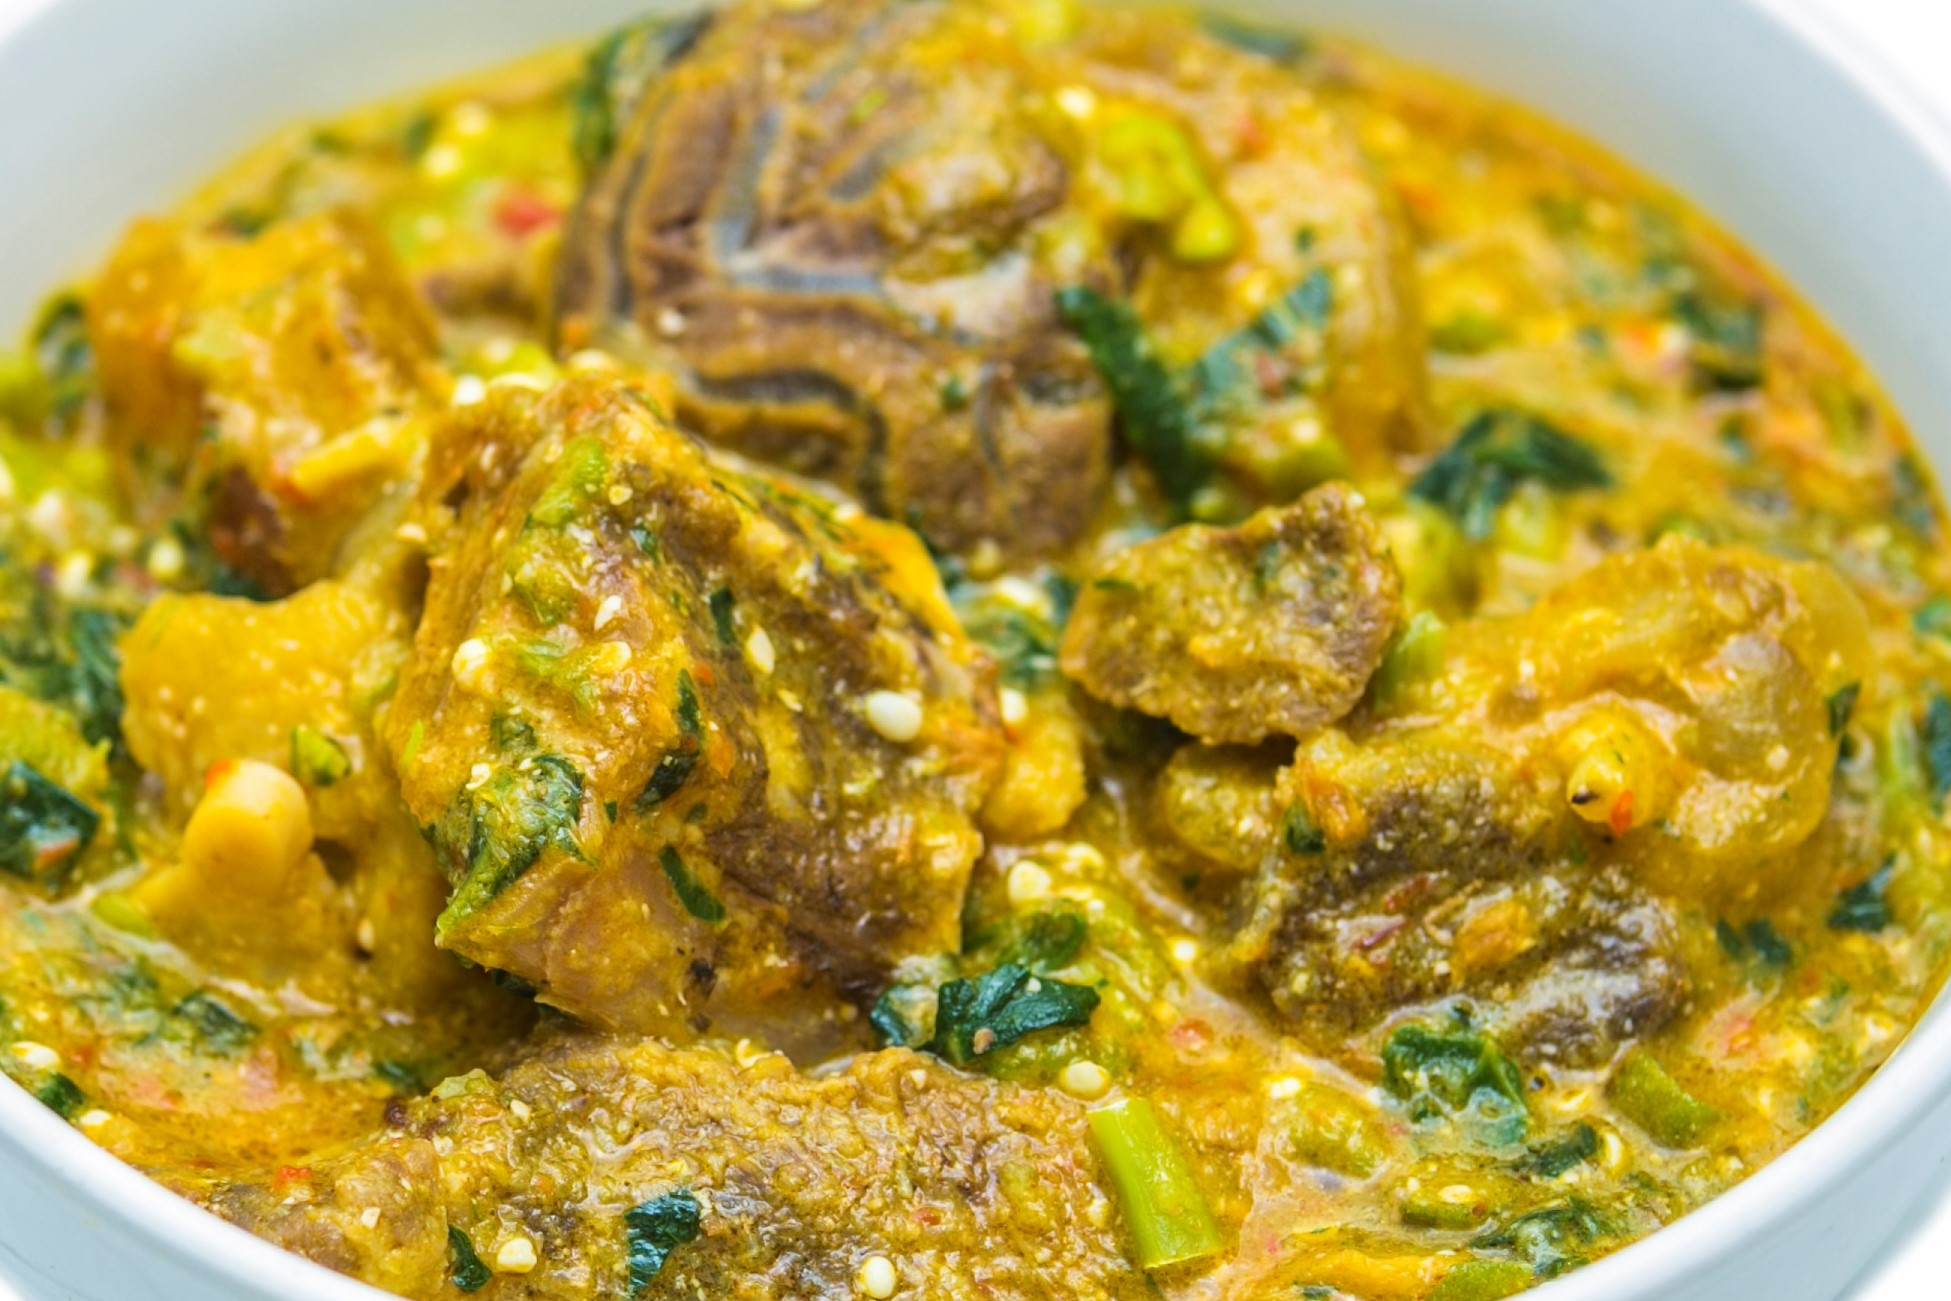 Soups and Stew Dishes